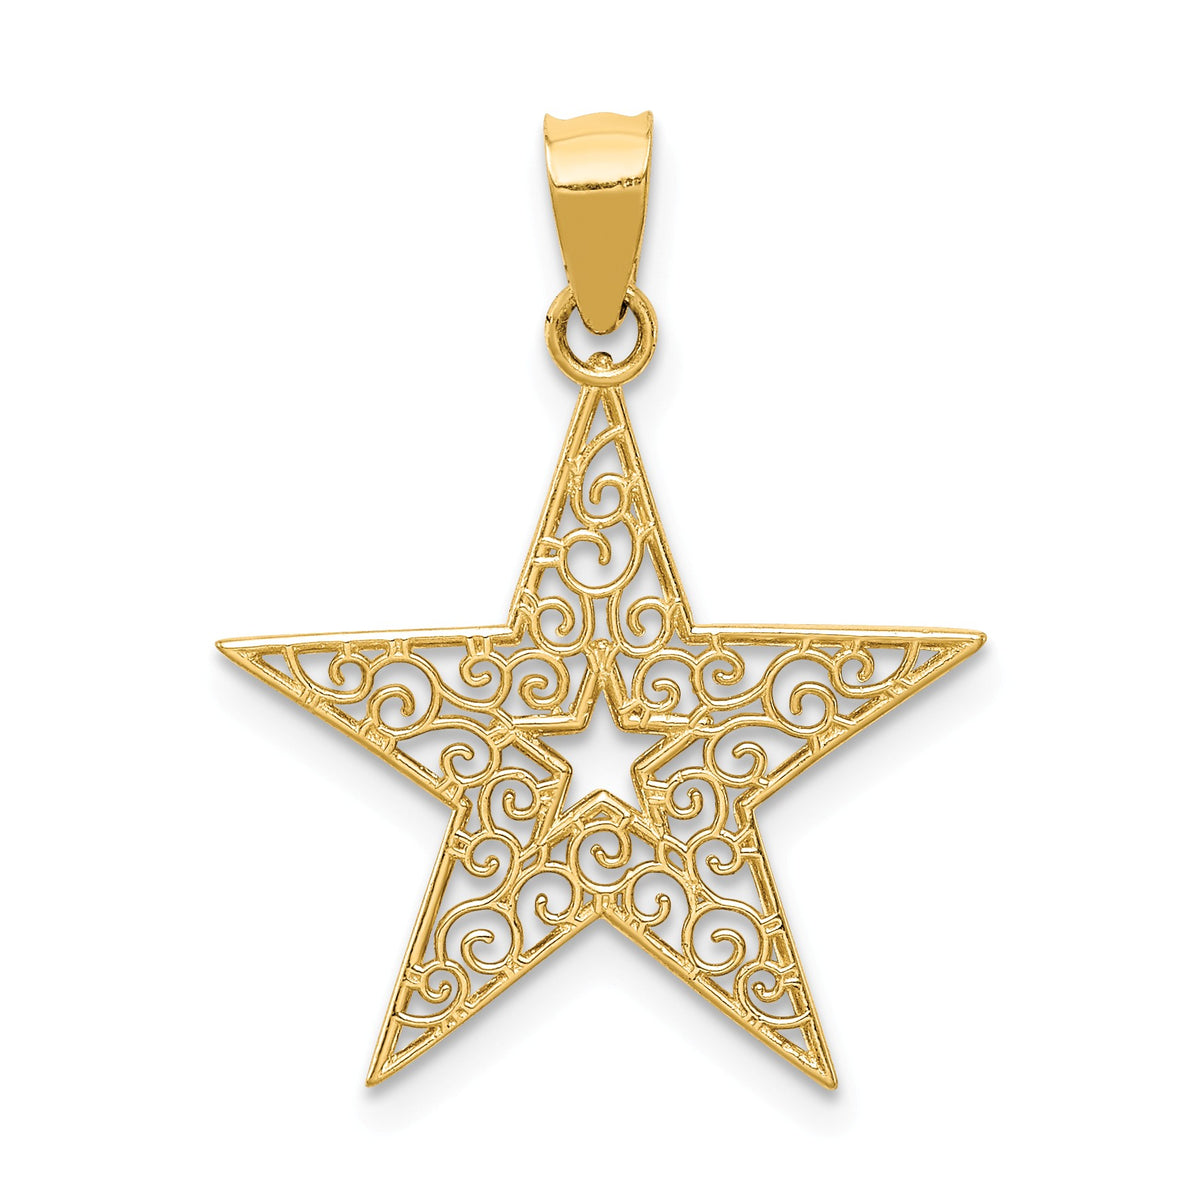 Alternate view of the 14k Yellow Gold 18mm Filigree Star Pendant by The Black Bow Jewelry Co.